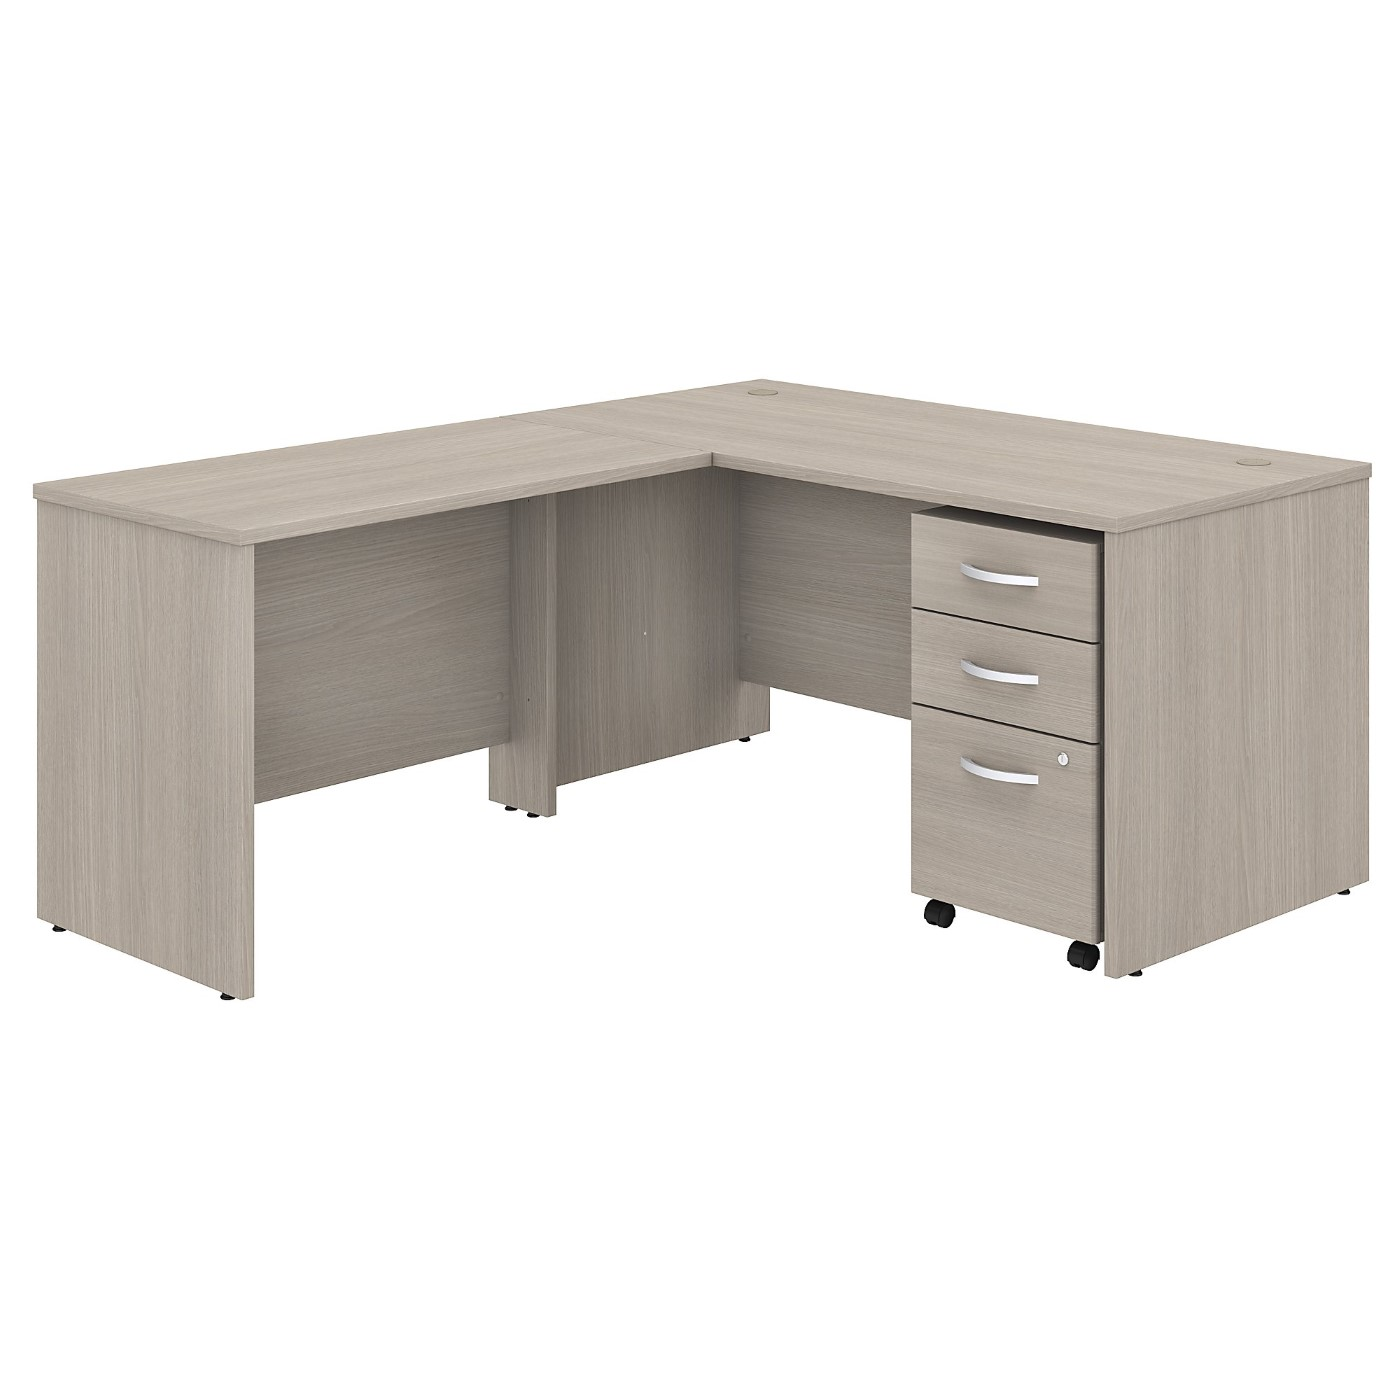 BUSH BUSINESS FURNITURE STUDIO C 60W X 30D L SHAPED DESK WITH MOBILE FILE CABINET AND 42W RETURN. FREE SHIPPING